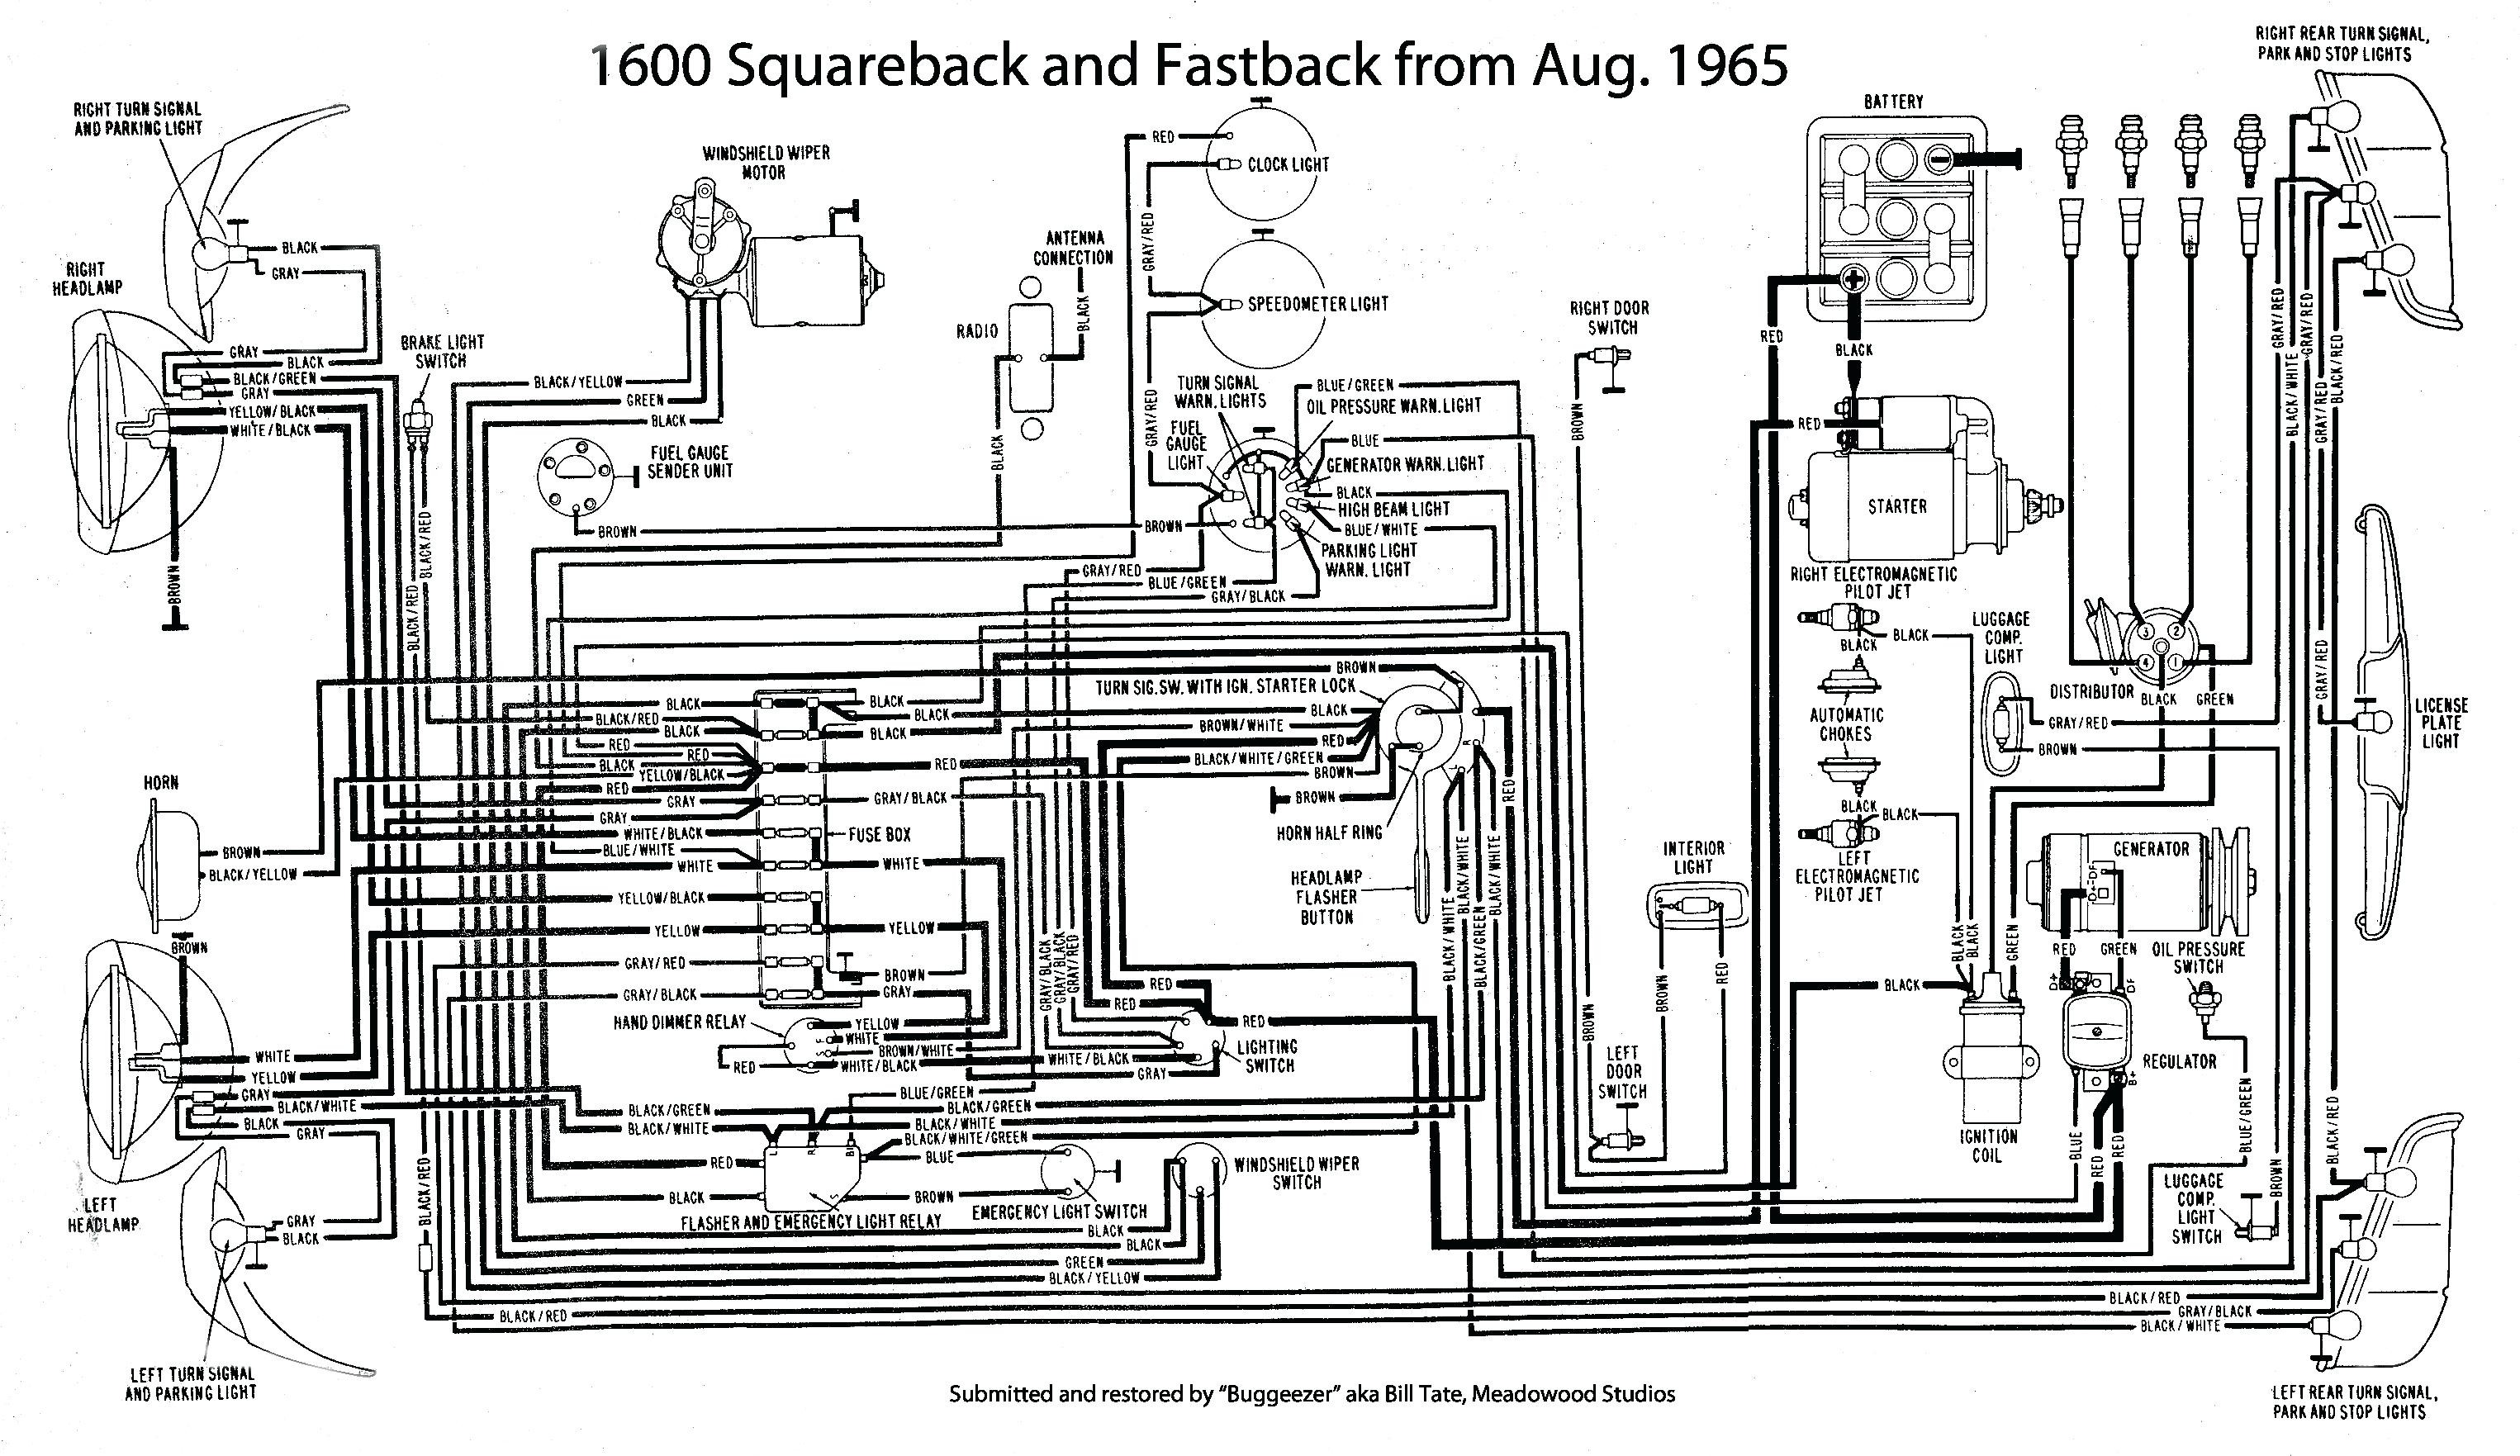 1973 Vw Beetle Engine Diagram Wiring Library Air Cooled Alternator 1970 Rh Detoxicrecenze Com